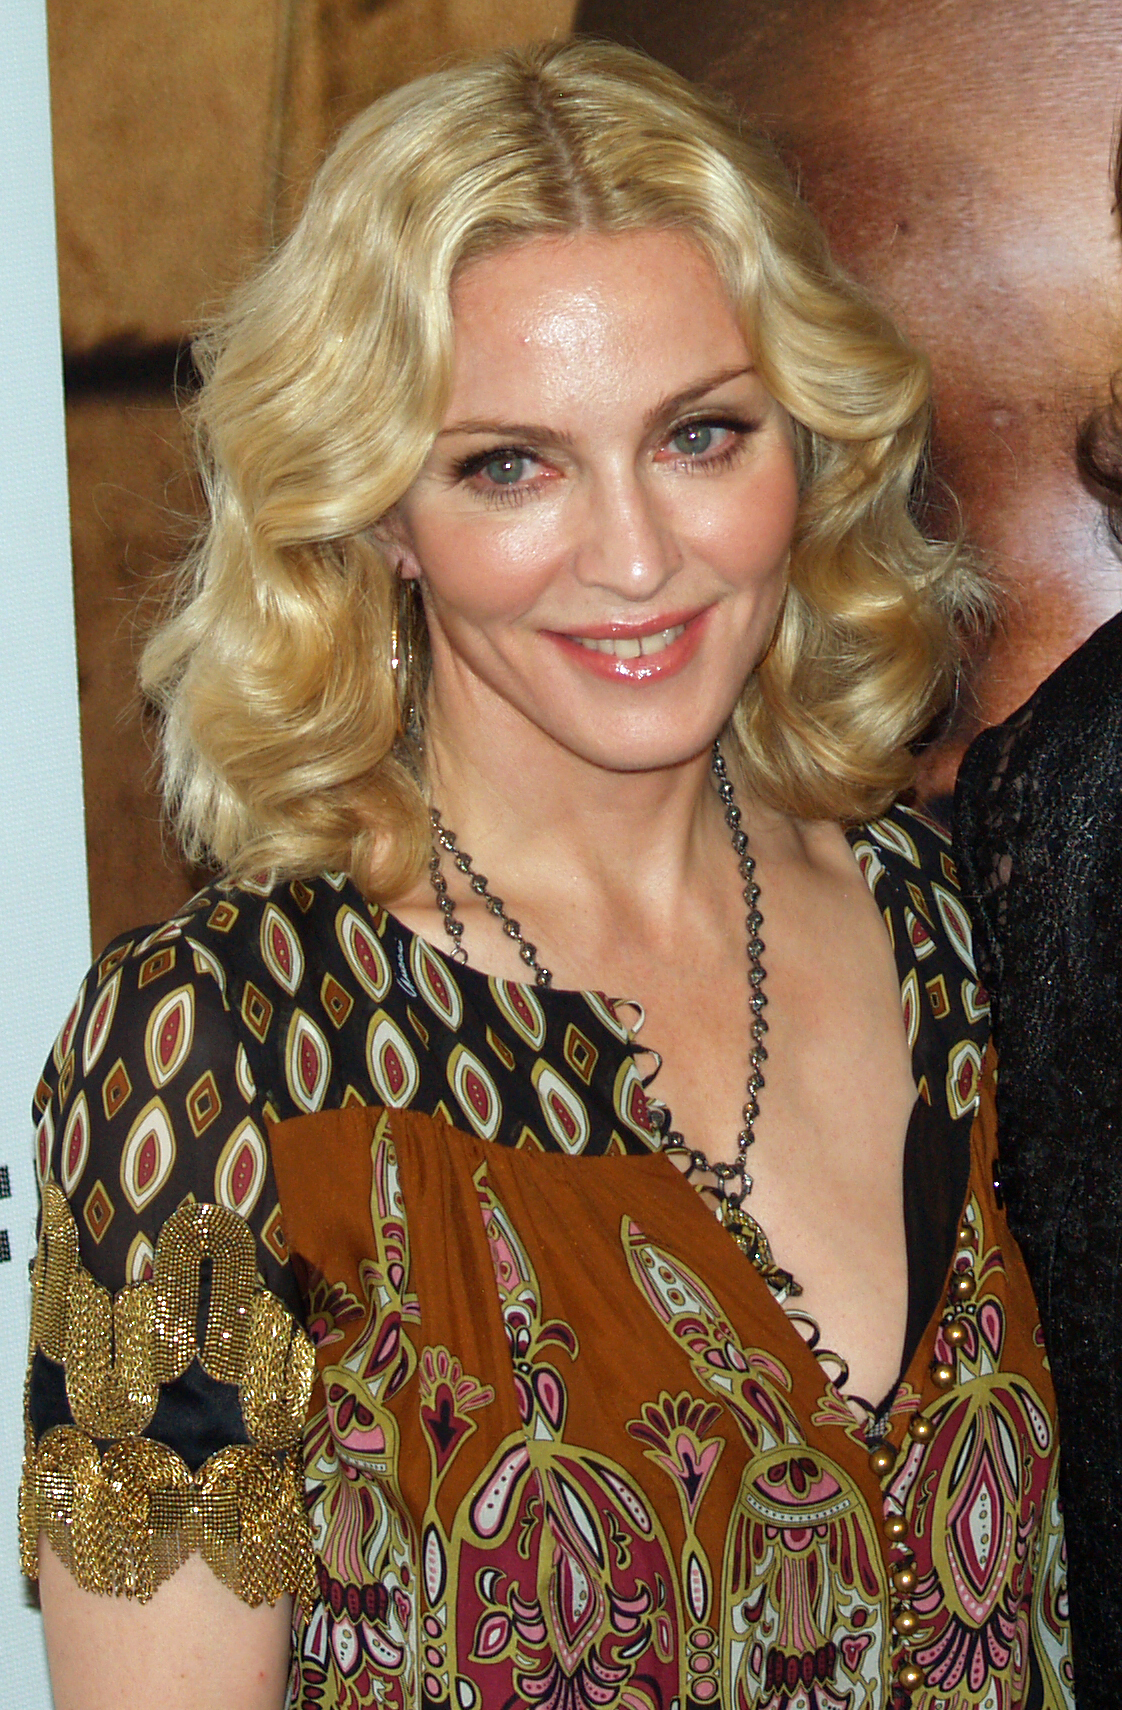 pictures Madonna (entertainer)